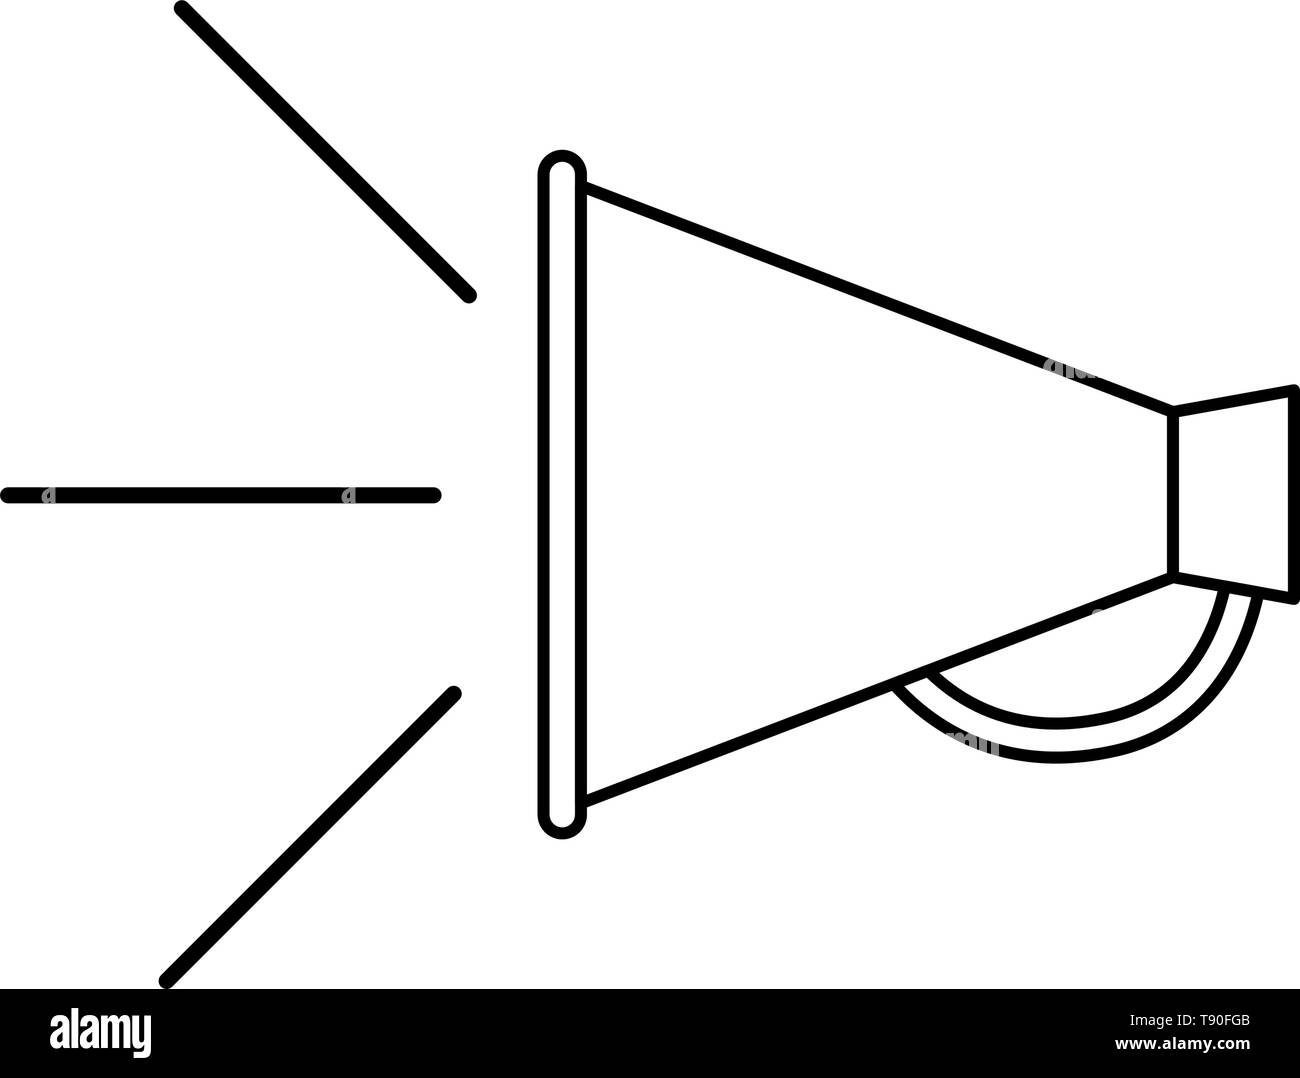 megaphone silhouette with white background - Stock Vector